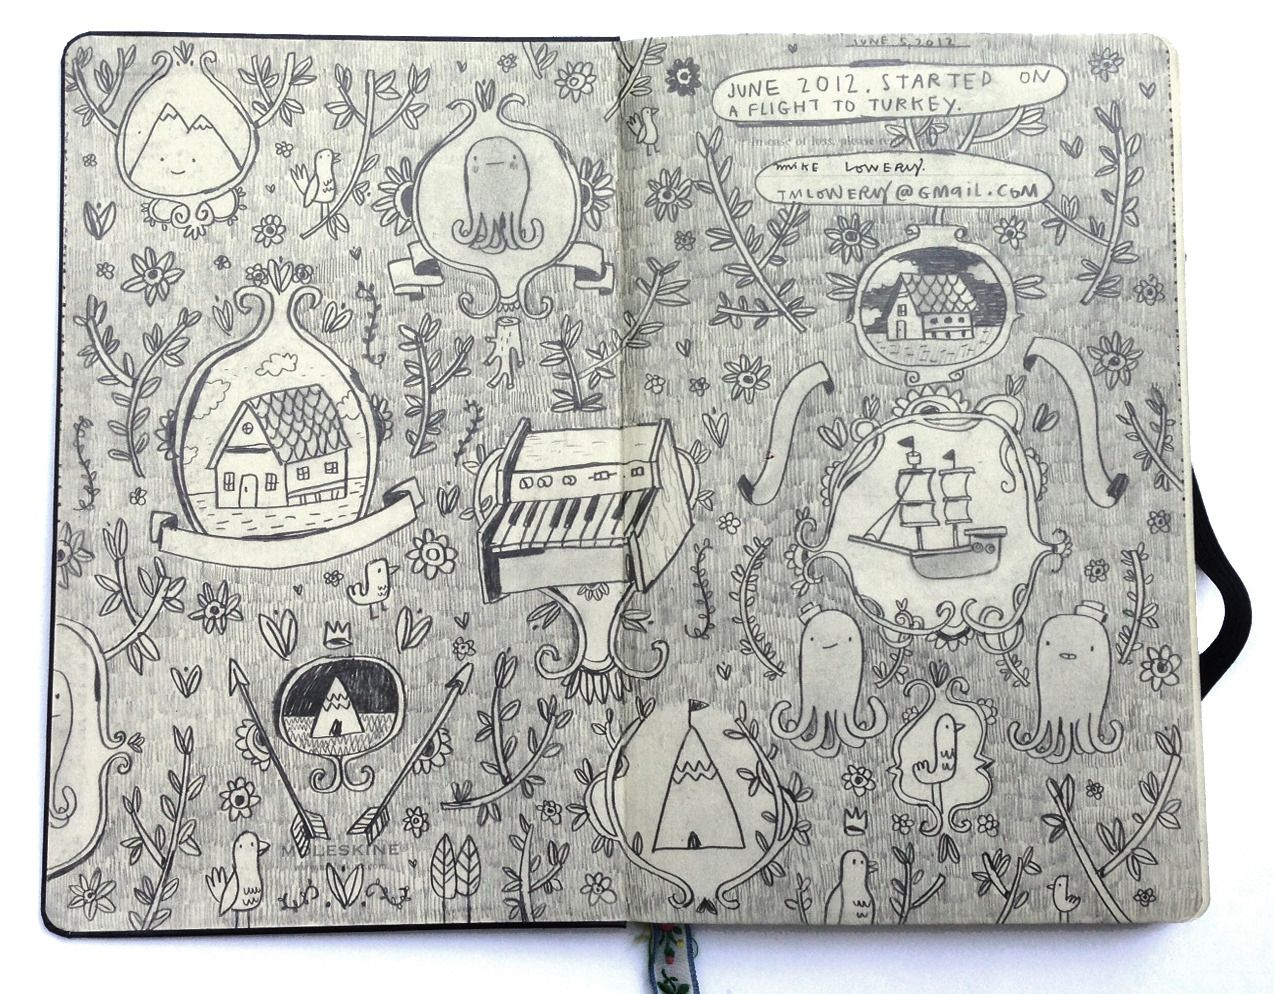 The Daily Sketchbook Blog Of Mike Lowery